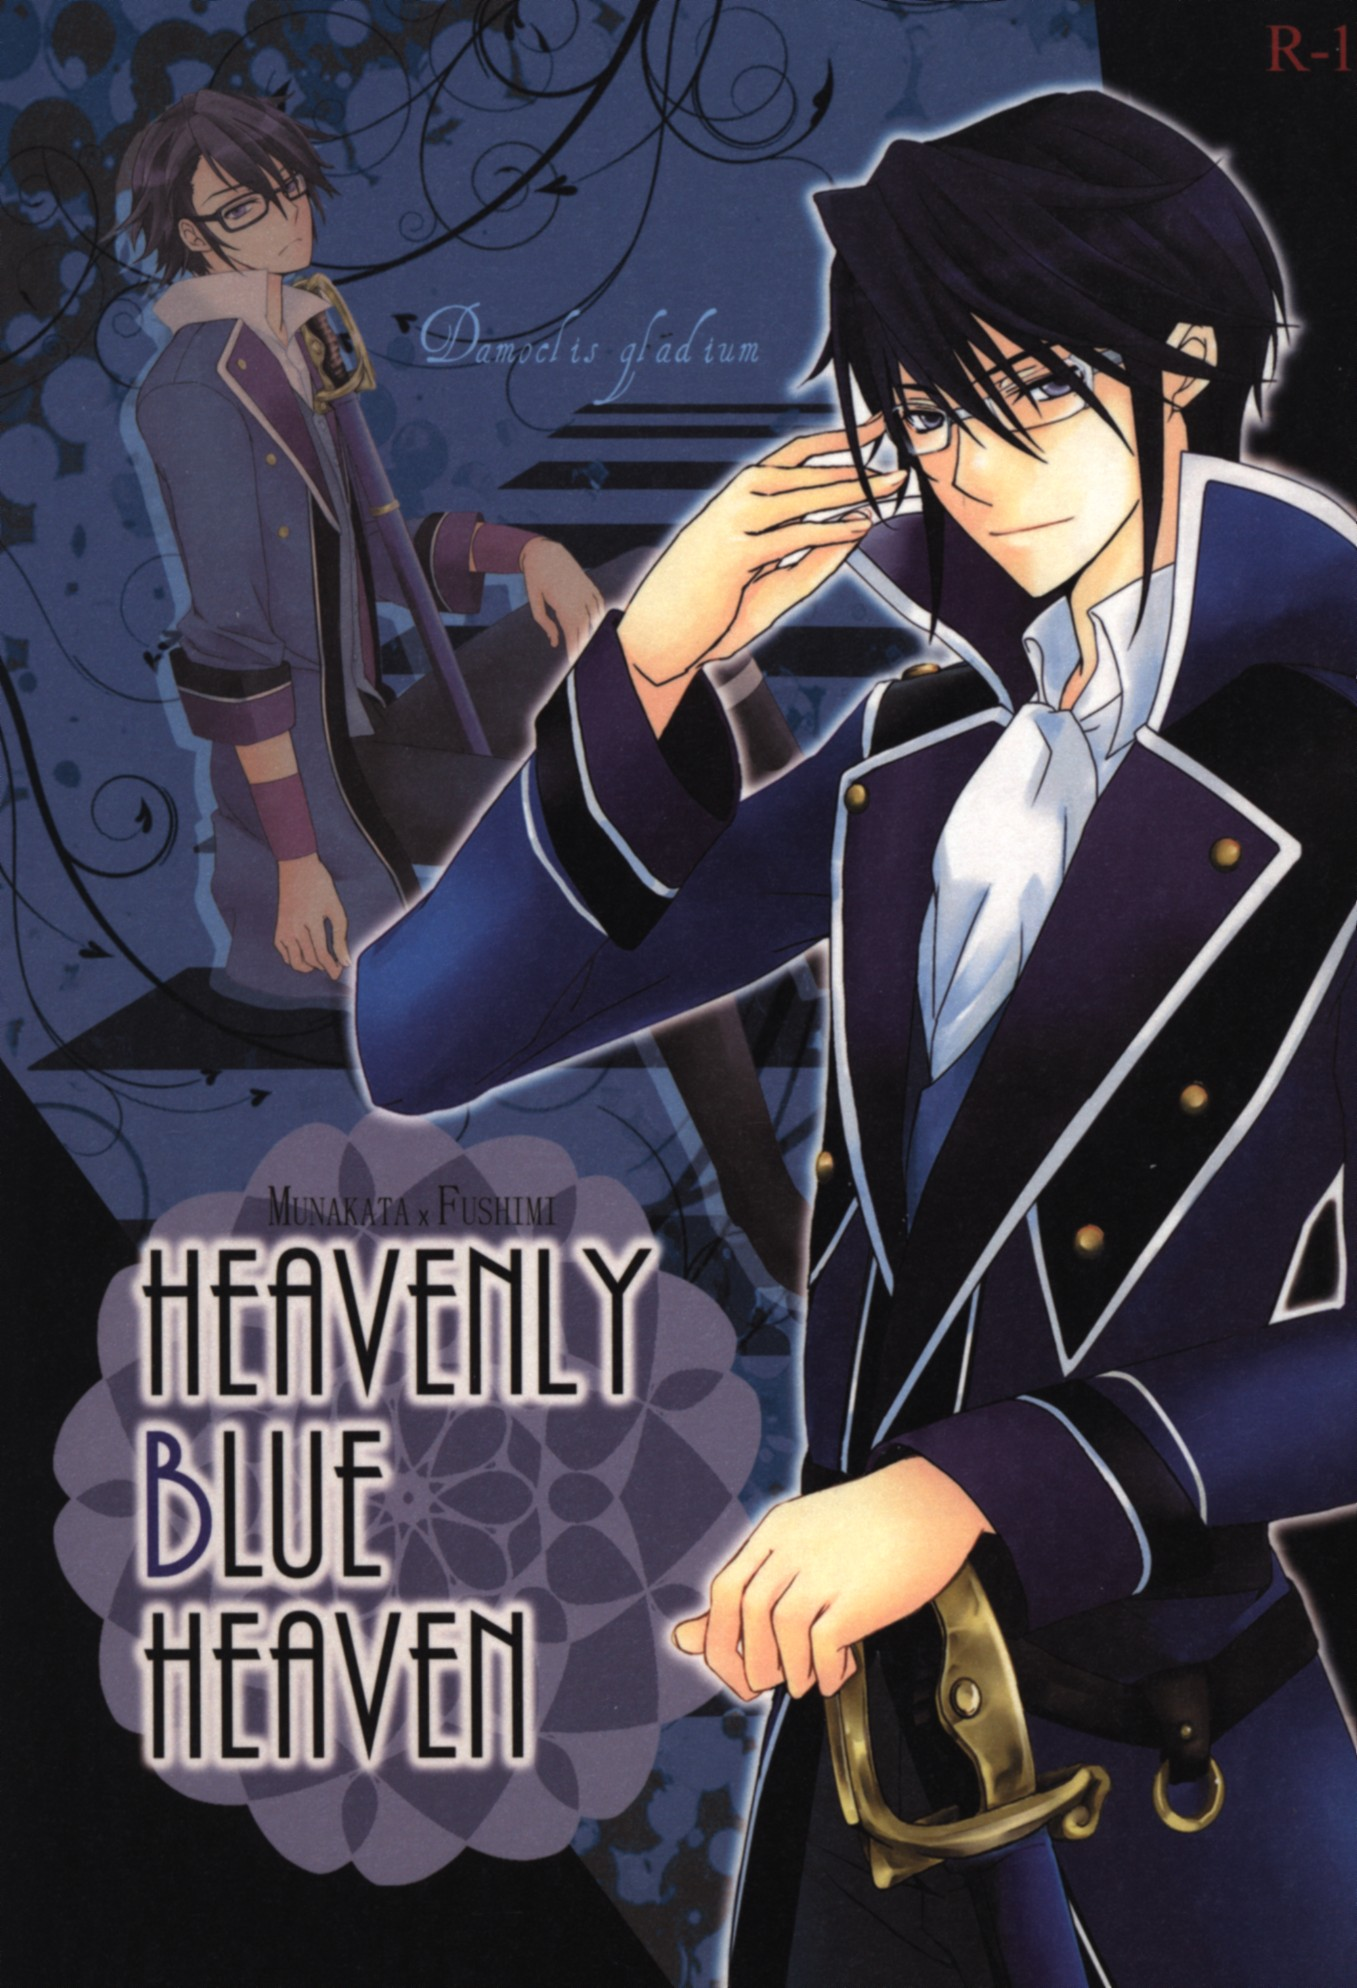 [Boys Love (Yaoi) : R18] Doujinshi - K (K Project) / Reisi x Saruhiko (HEAVENLY BLUE HEAVEN) / cresc.